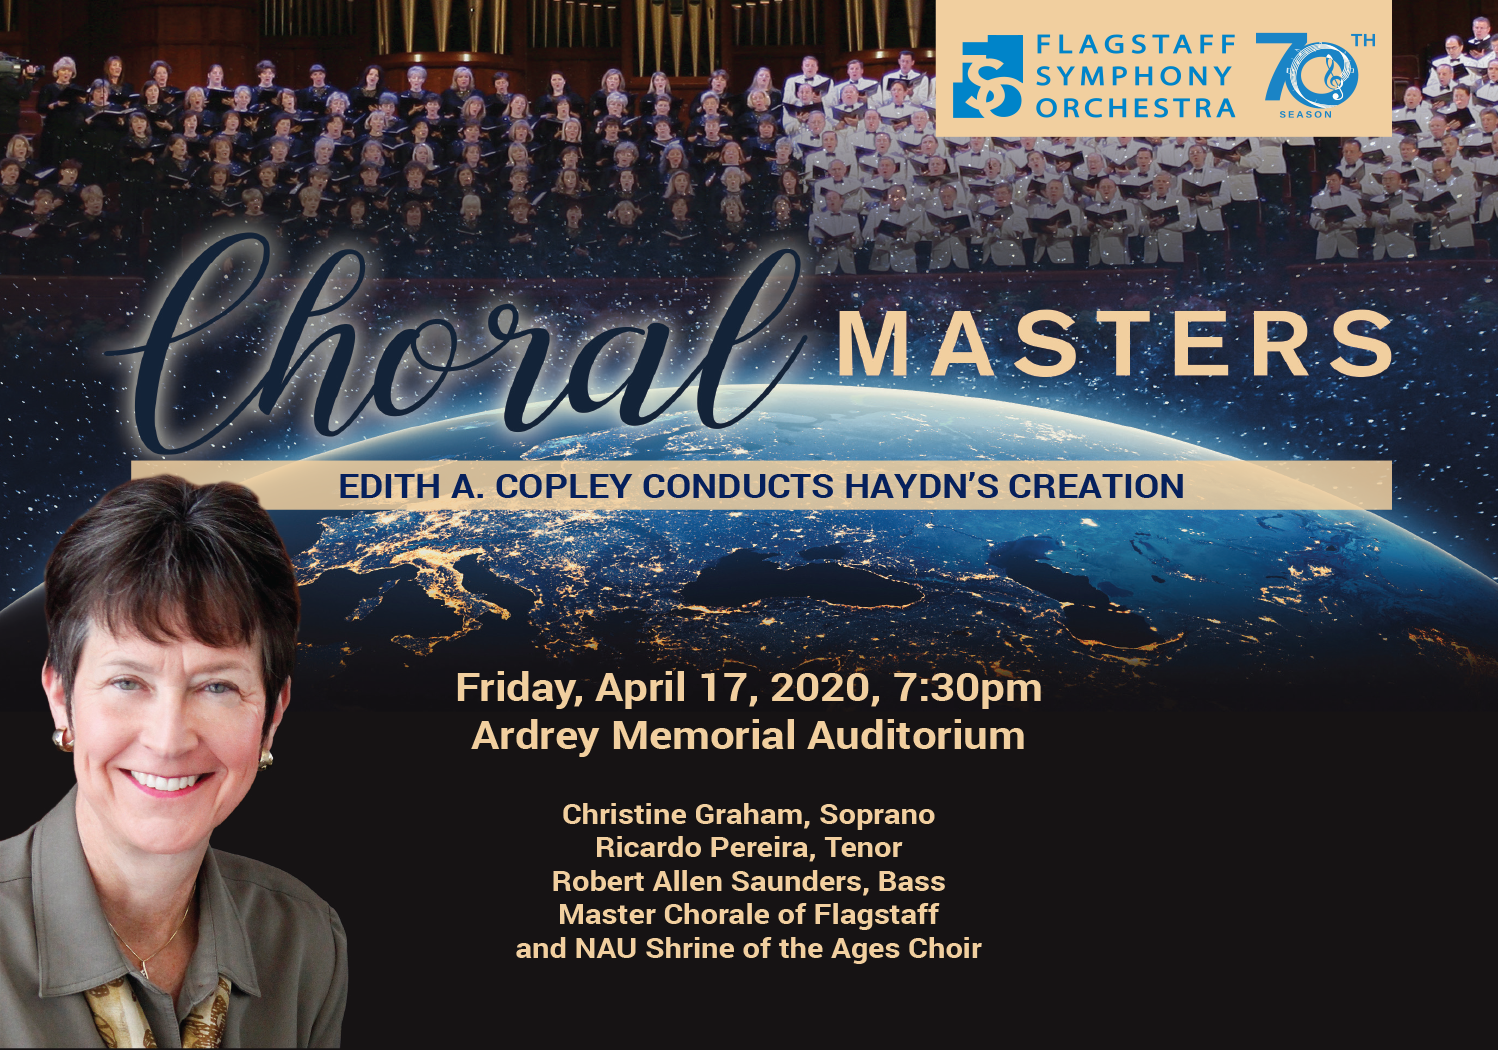 Choral Masters, Edith A. Copley Conducts Haydn's Creation